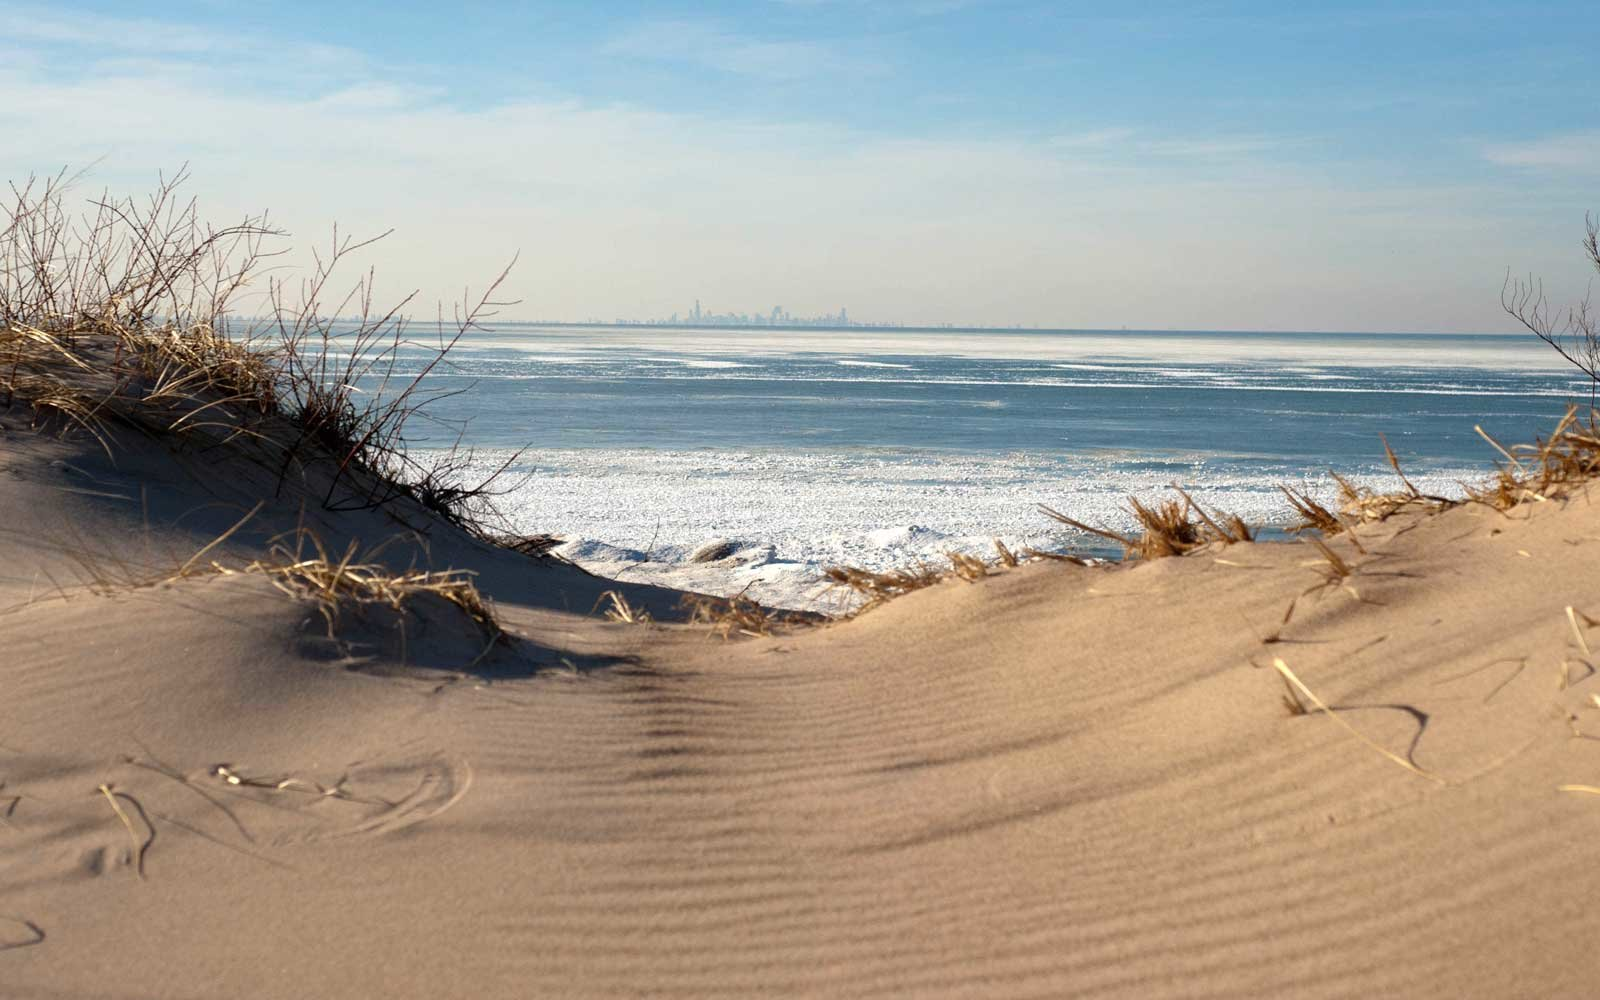 Winter at the Indiana Dunes National Lakeshore